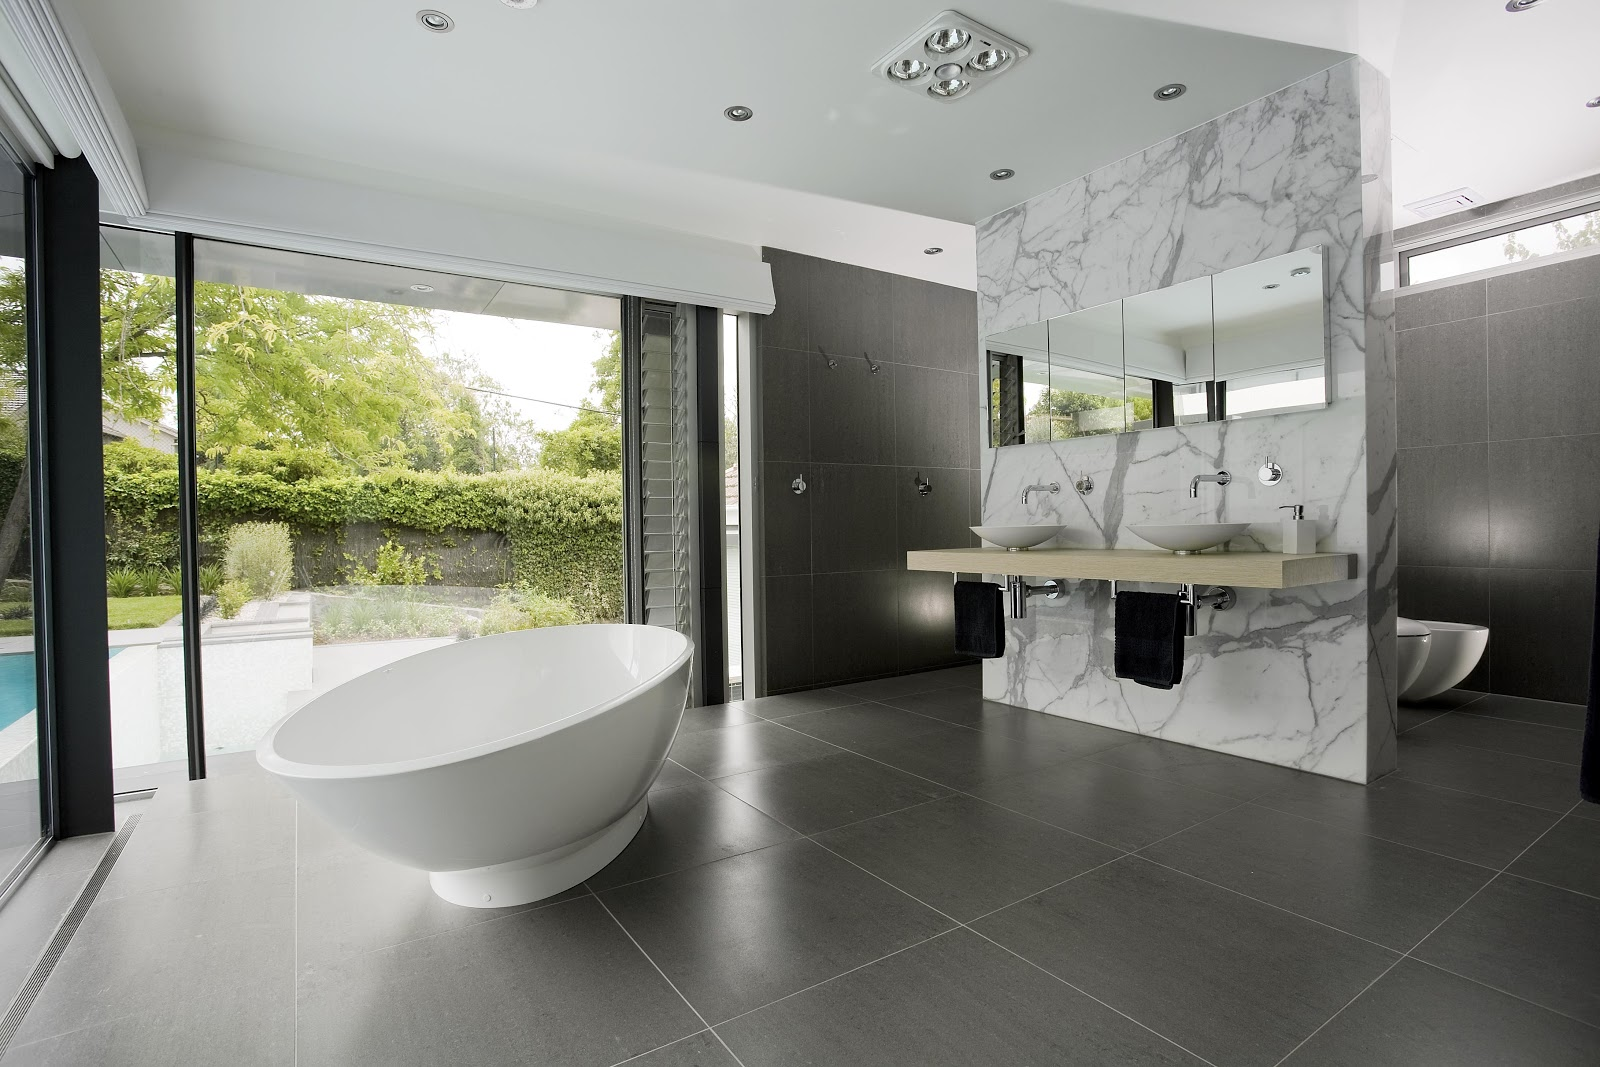 Minosa modern bathrooms the search for something different for Popular bathroom decor